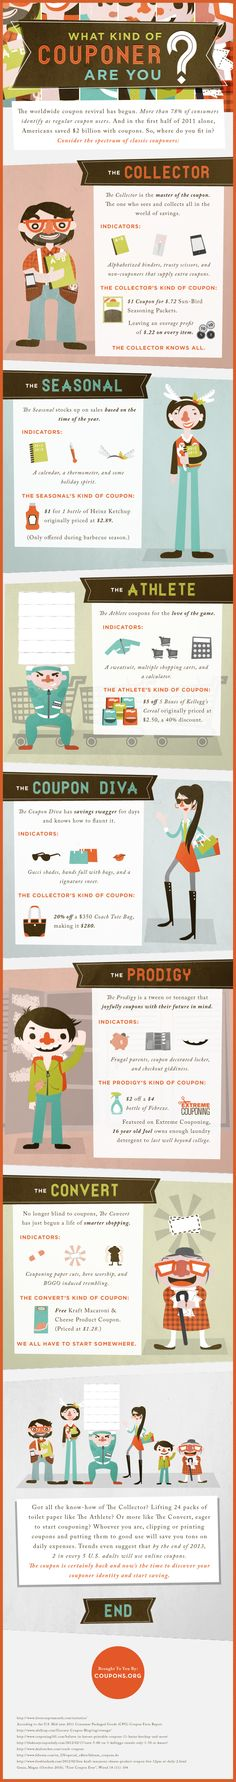 I'm definitely the Coupon Diva. What are you?